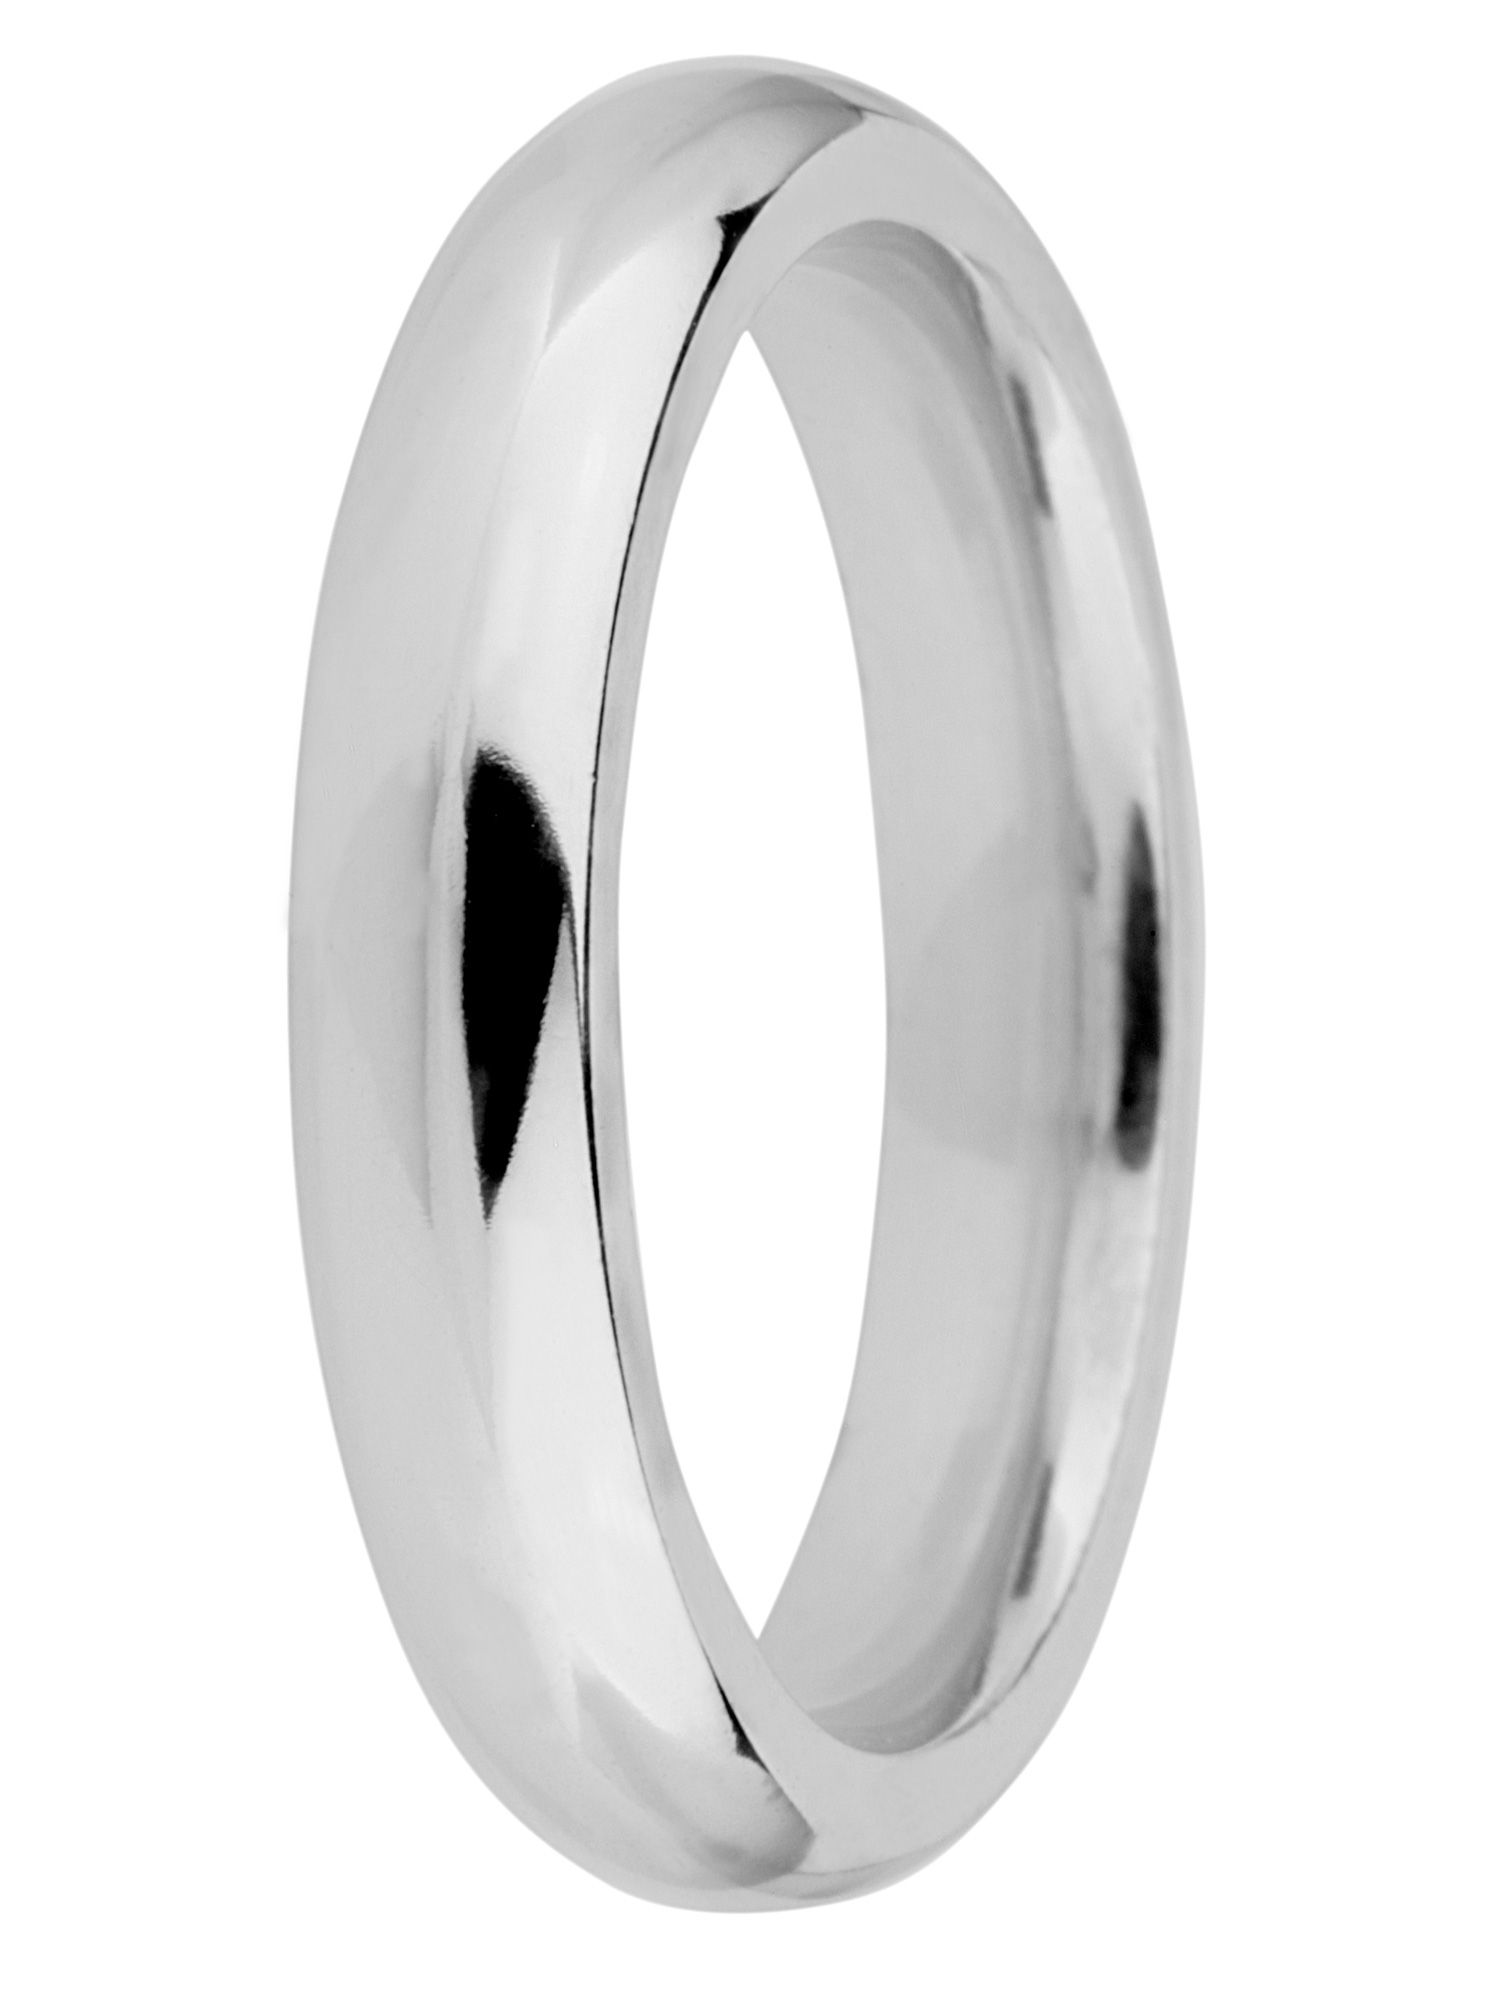 Brides 9ct gold 4mm court wedding ring - White Gold